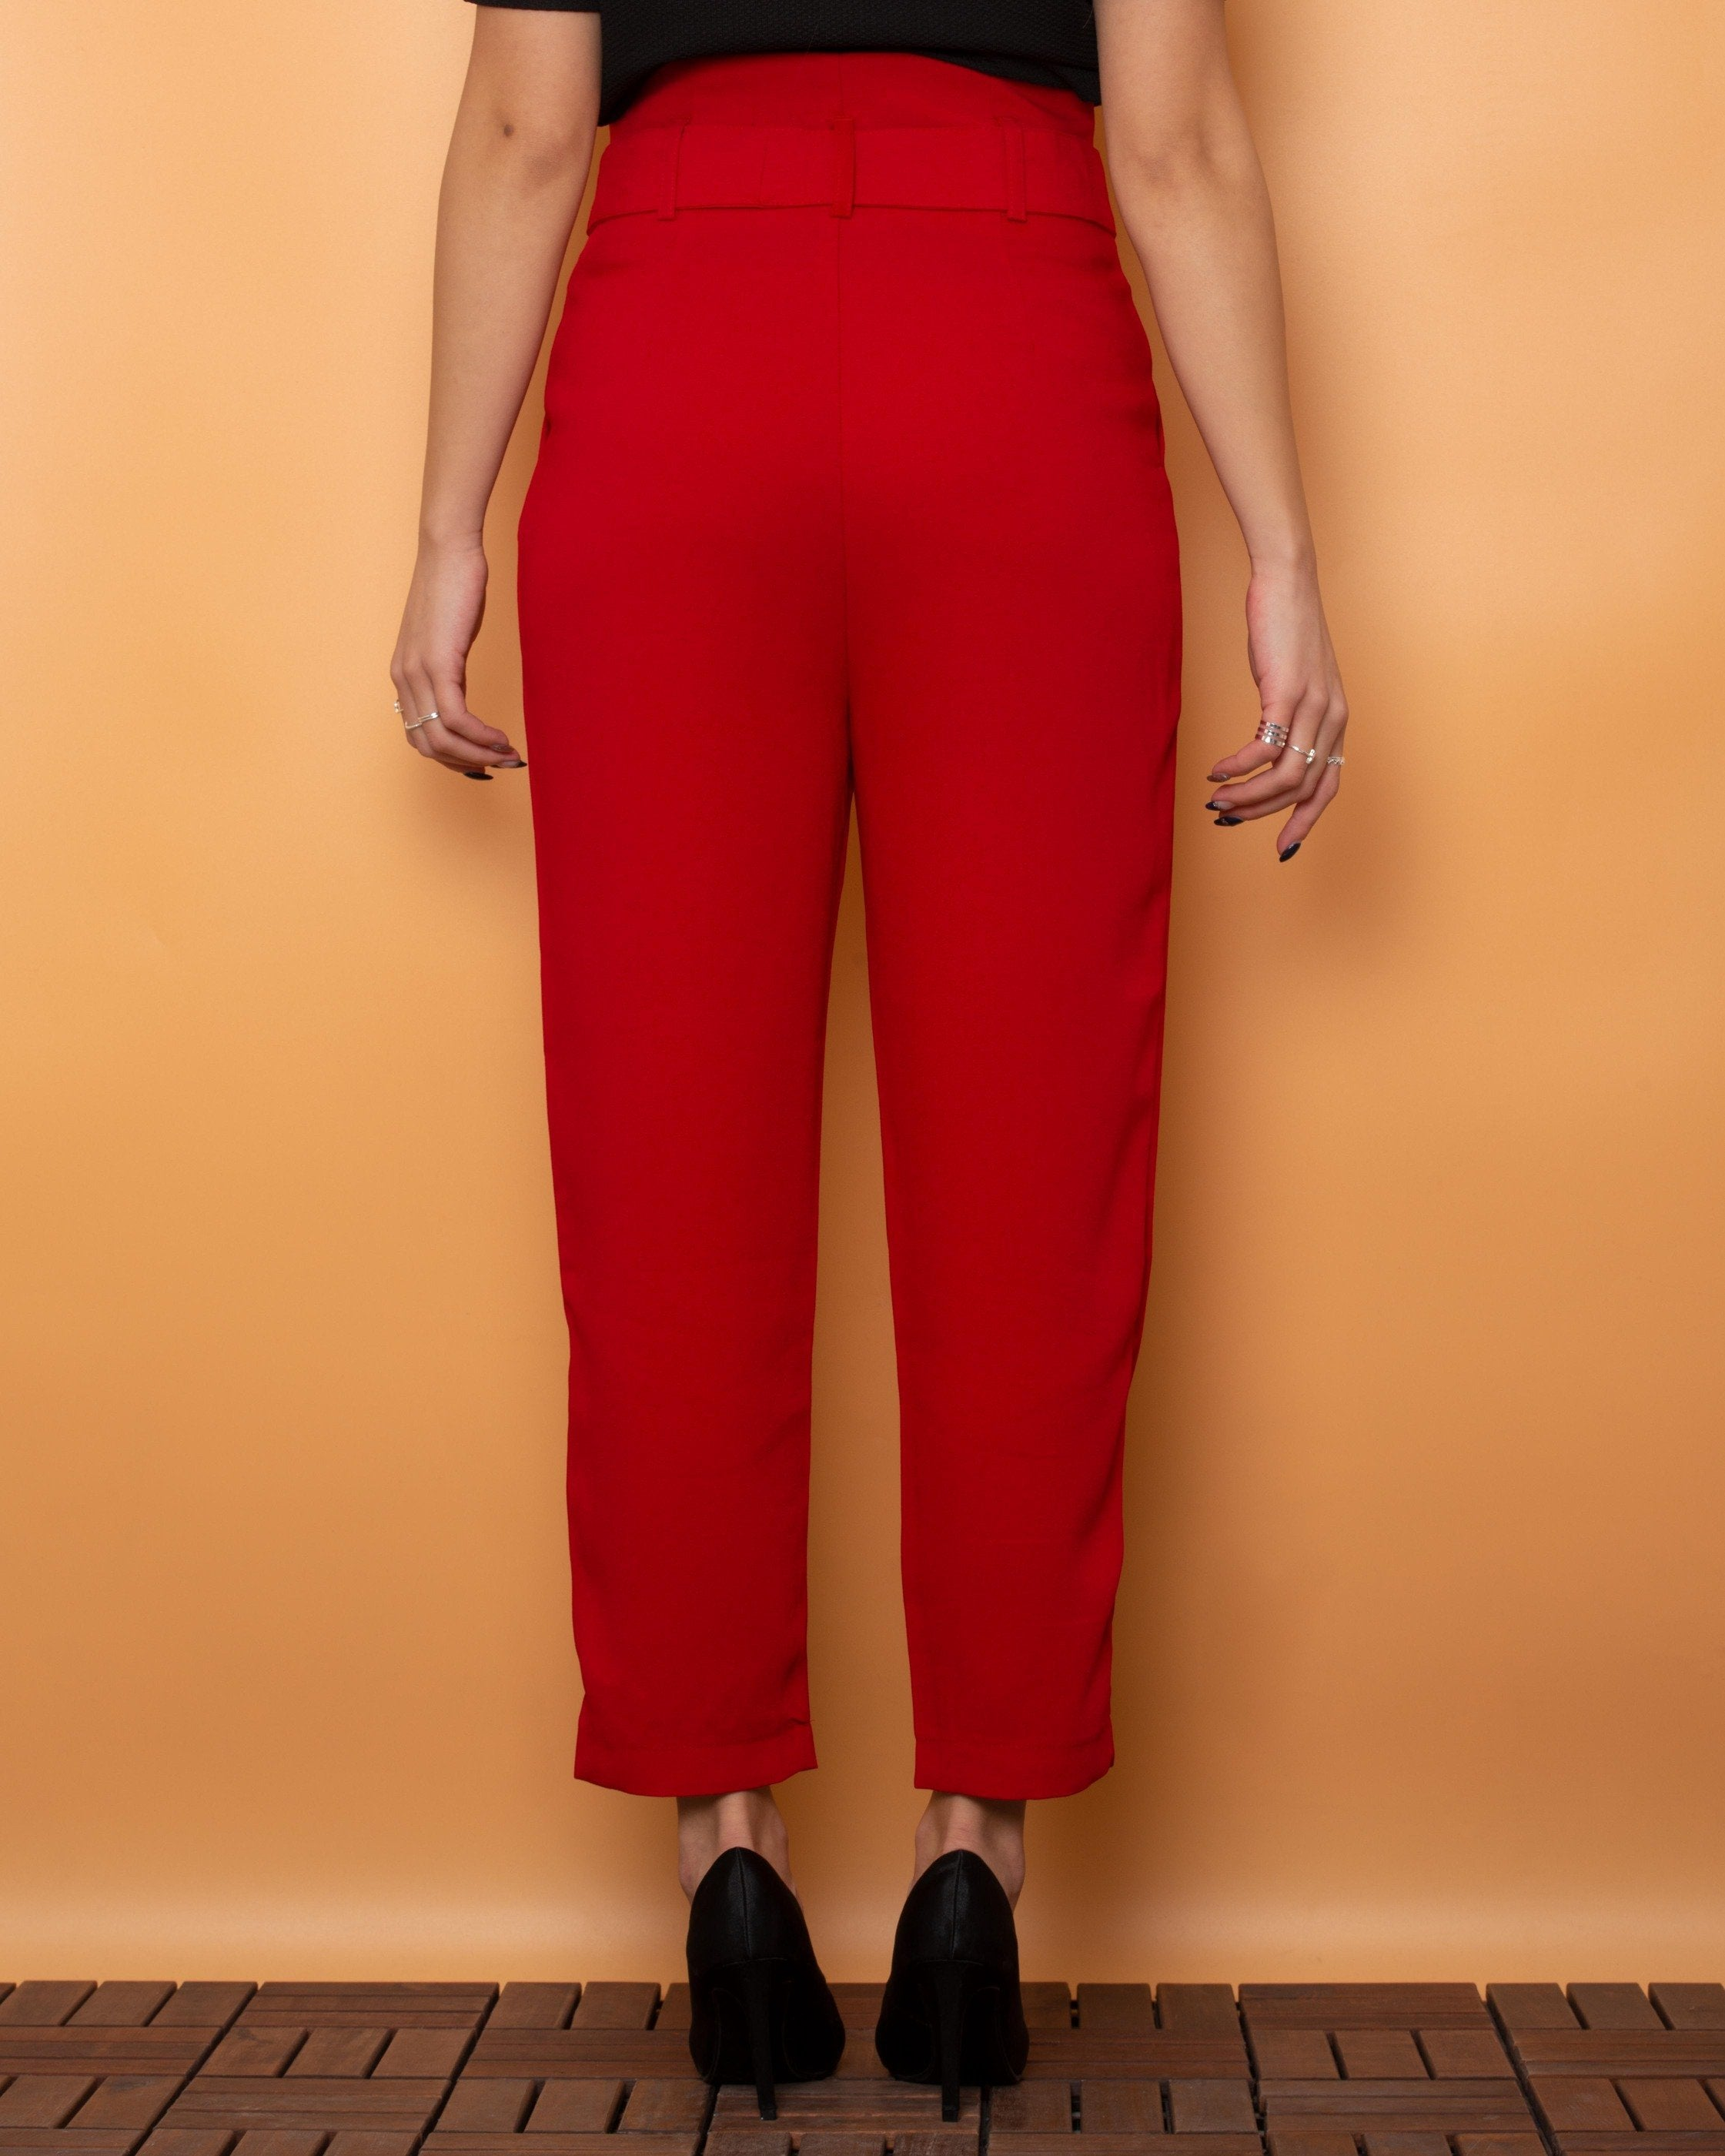 Stradivarius Fabric Pants High Waist Red